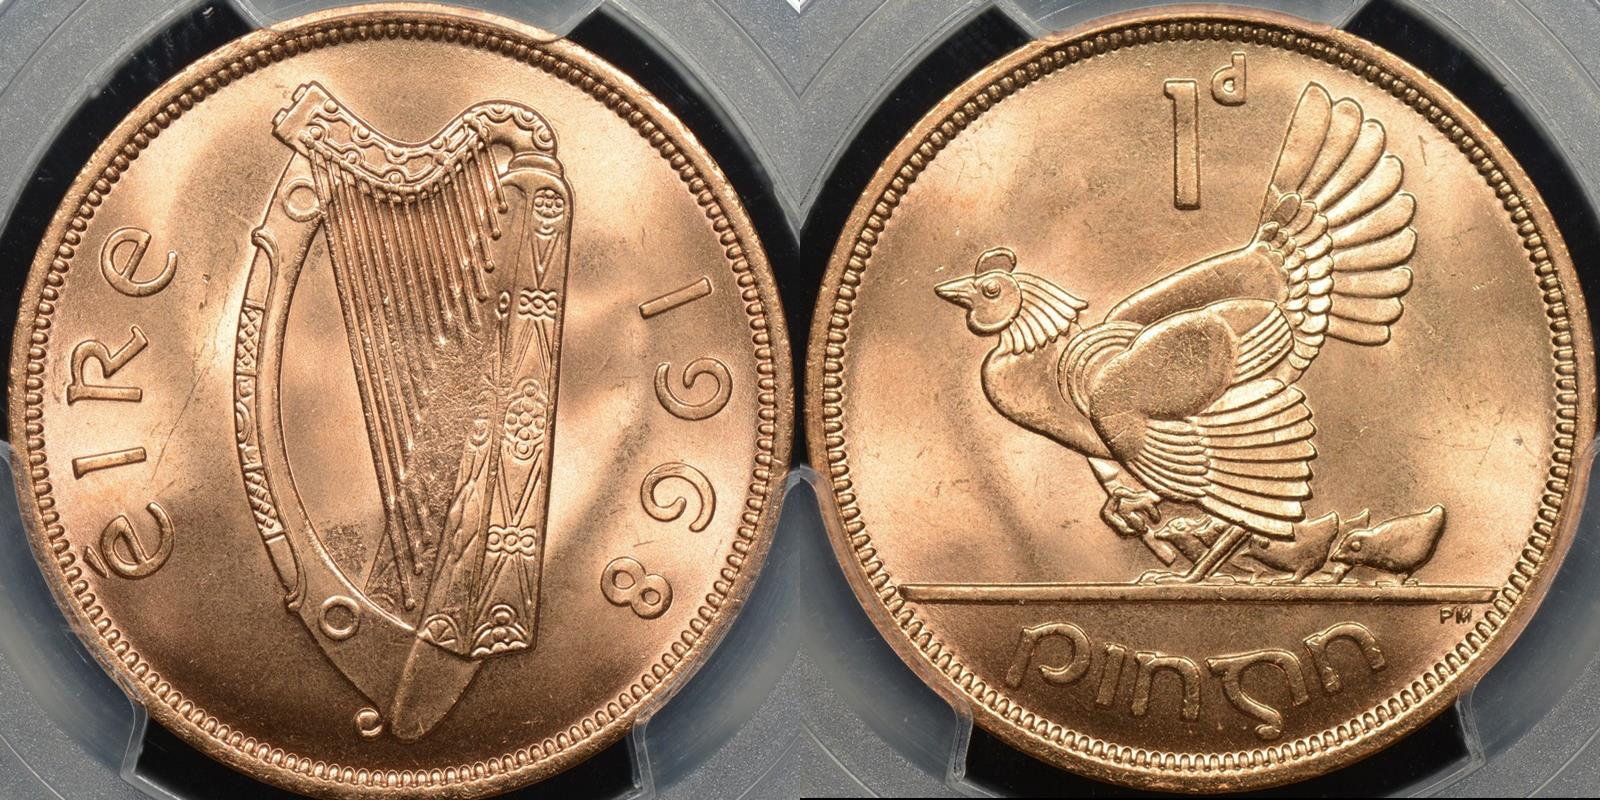 Ireland 1968 penny km 11 GEM Uncirculated PCGS MS65rd red